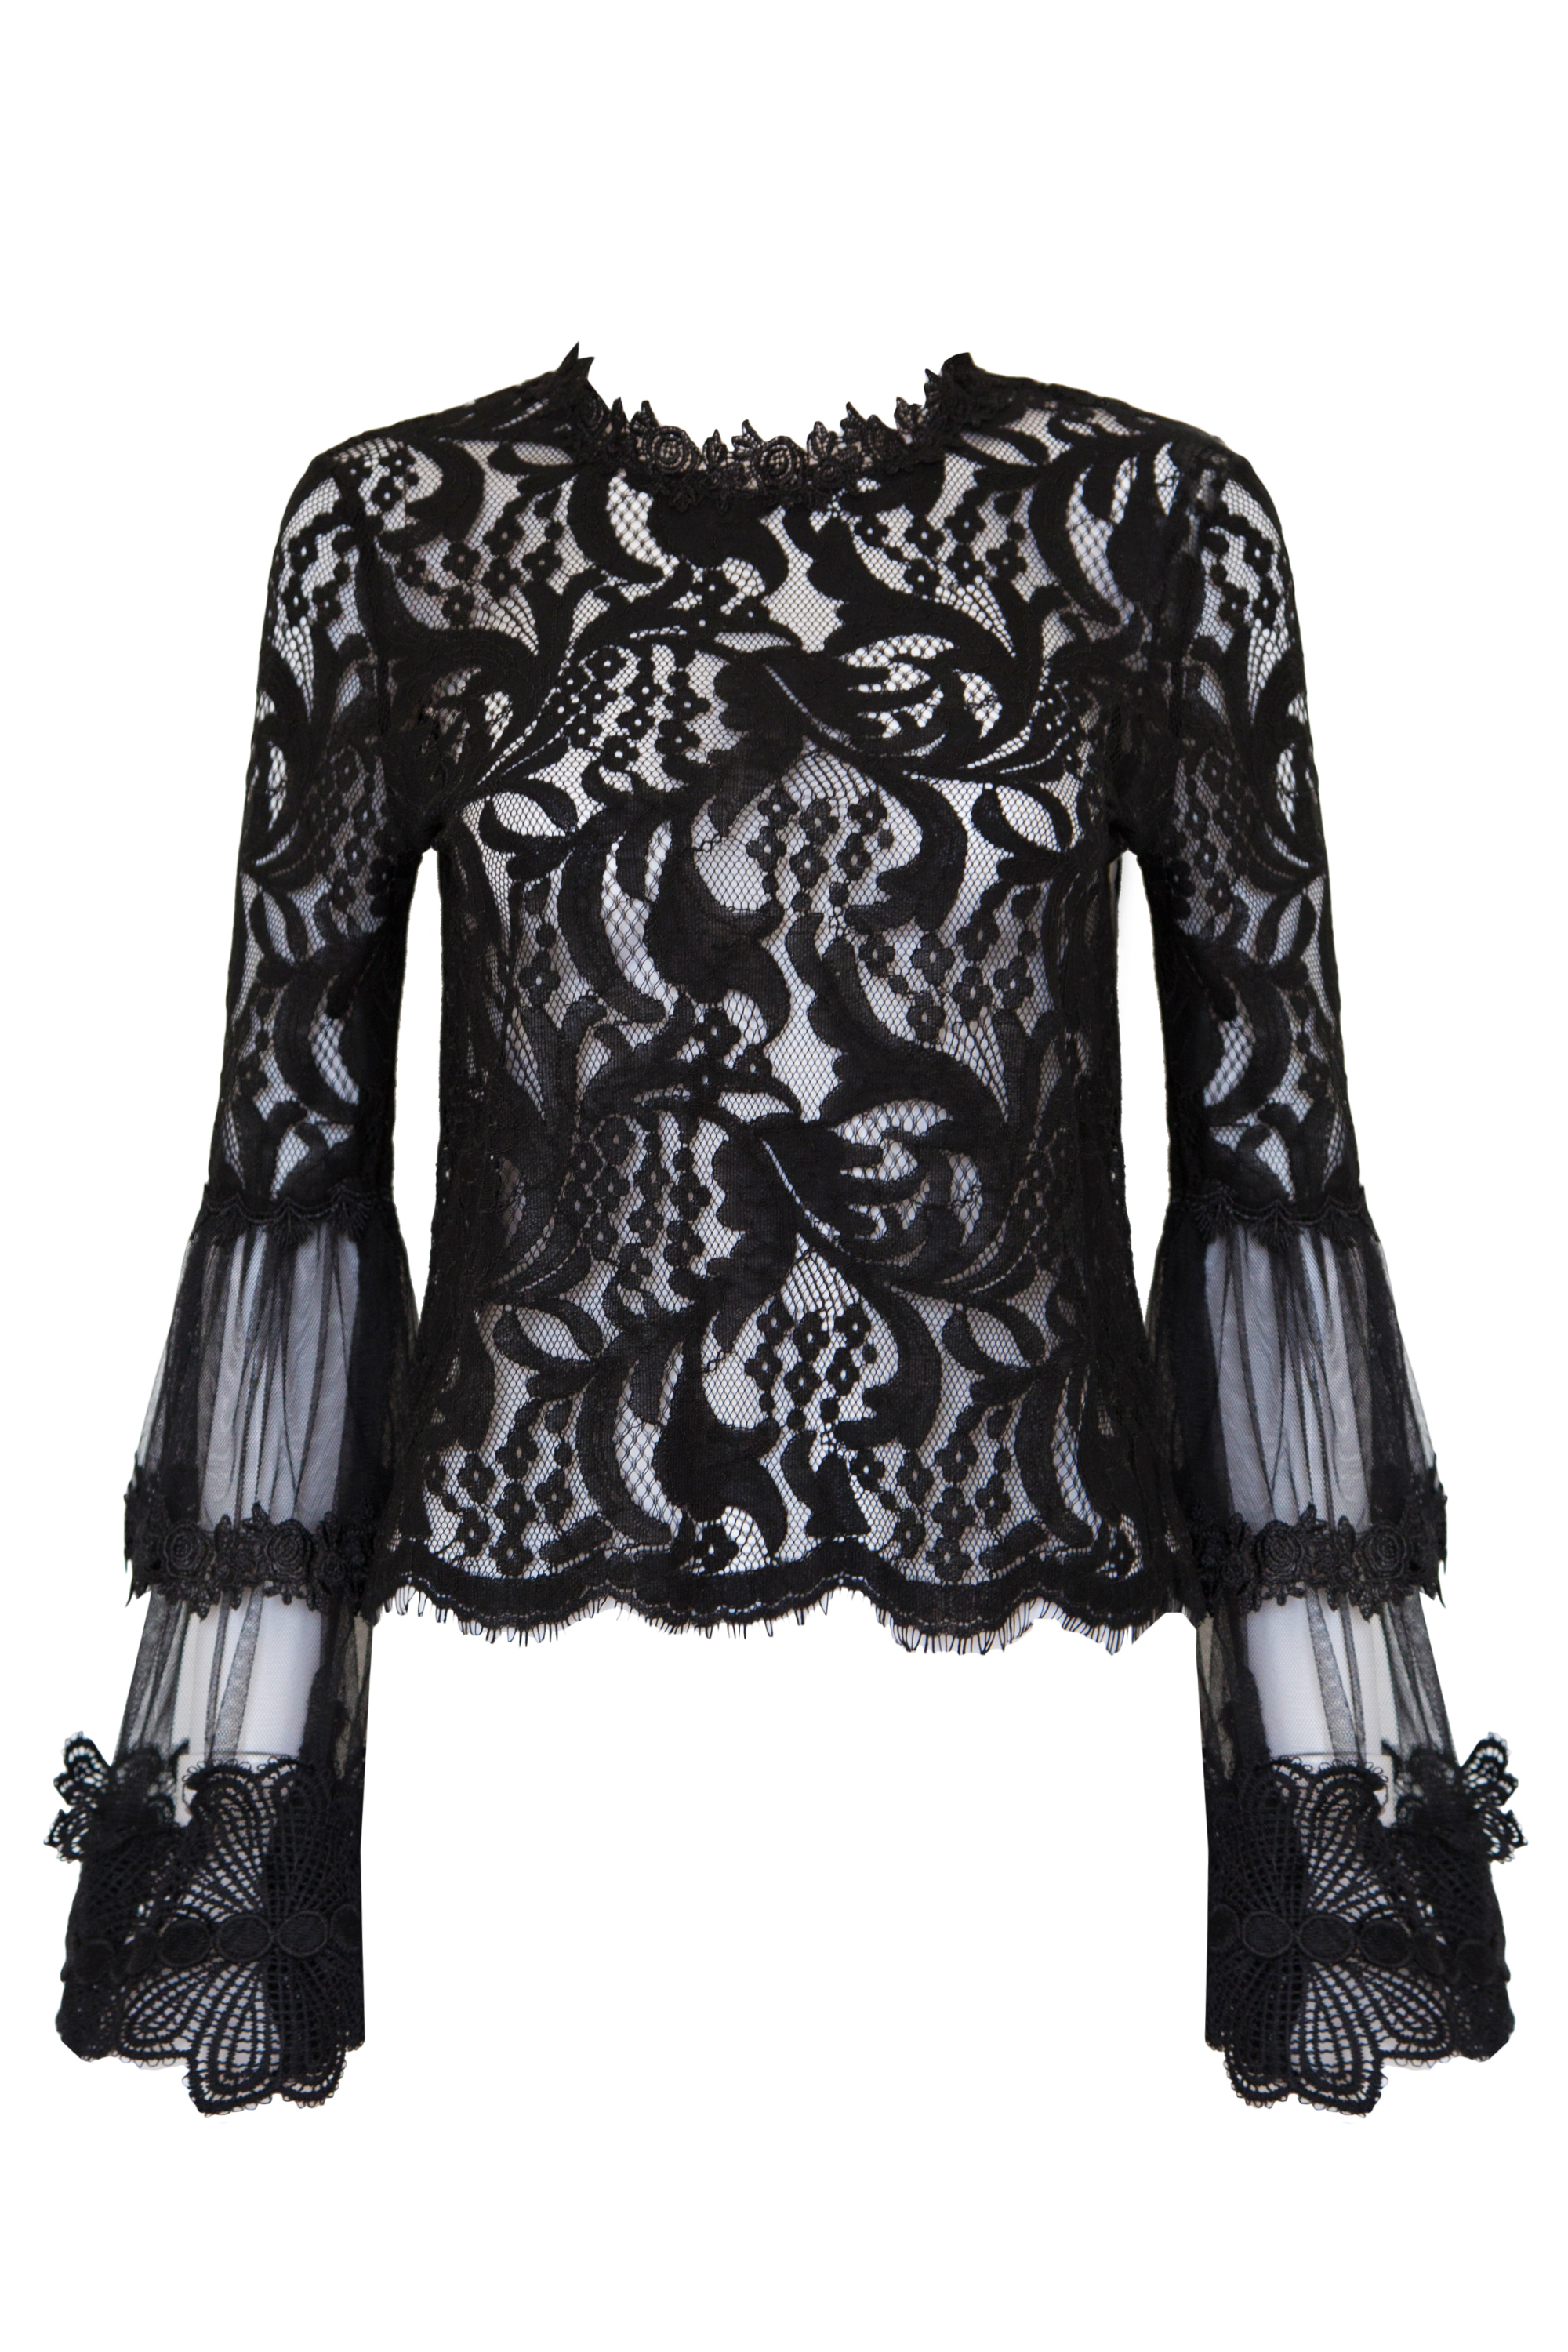 397f561eadf0f6 Trouva: Style3 Black Lace Bell Sleeves Top